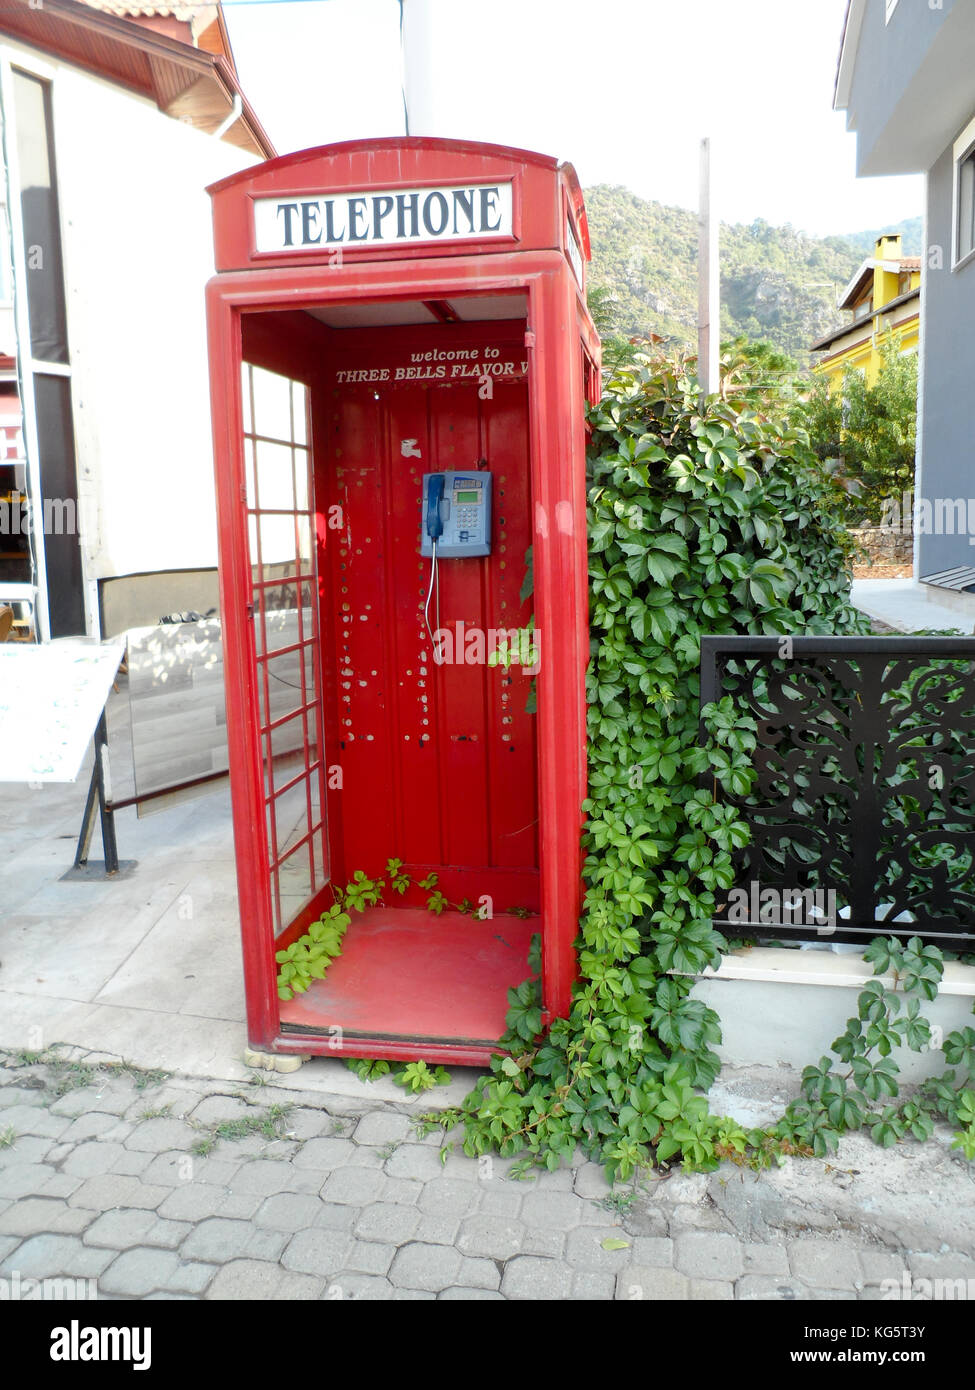 Old replica British red telephone box used as a tourist attraction outside a bar in Icmeler, Mugla province, Turkey - Stock Image